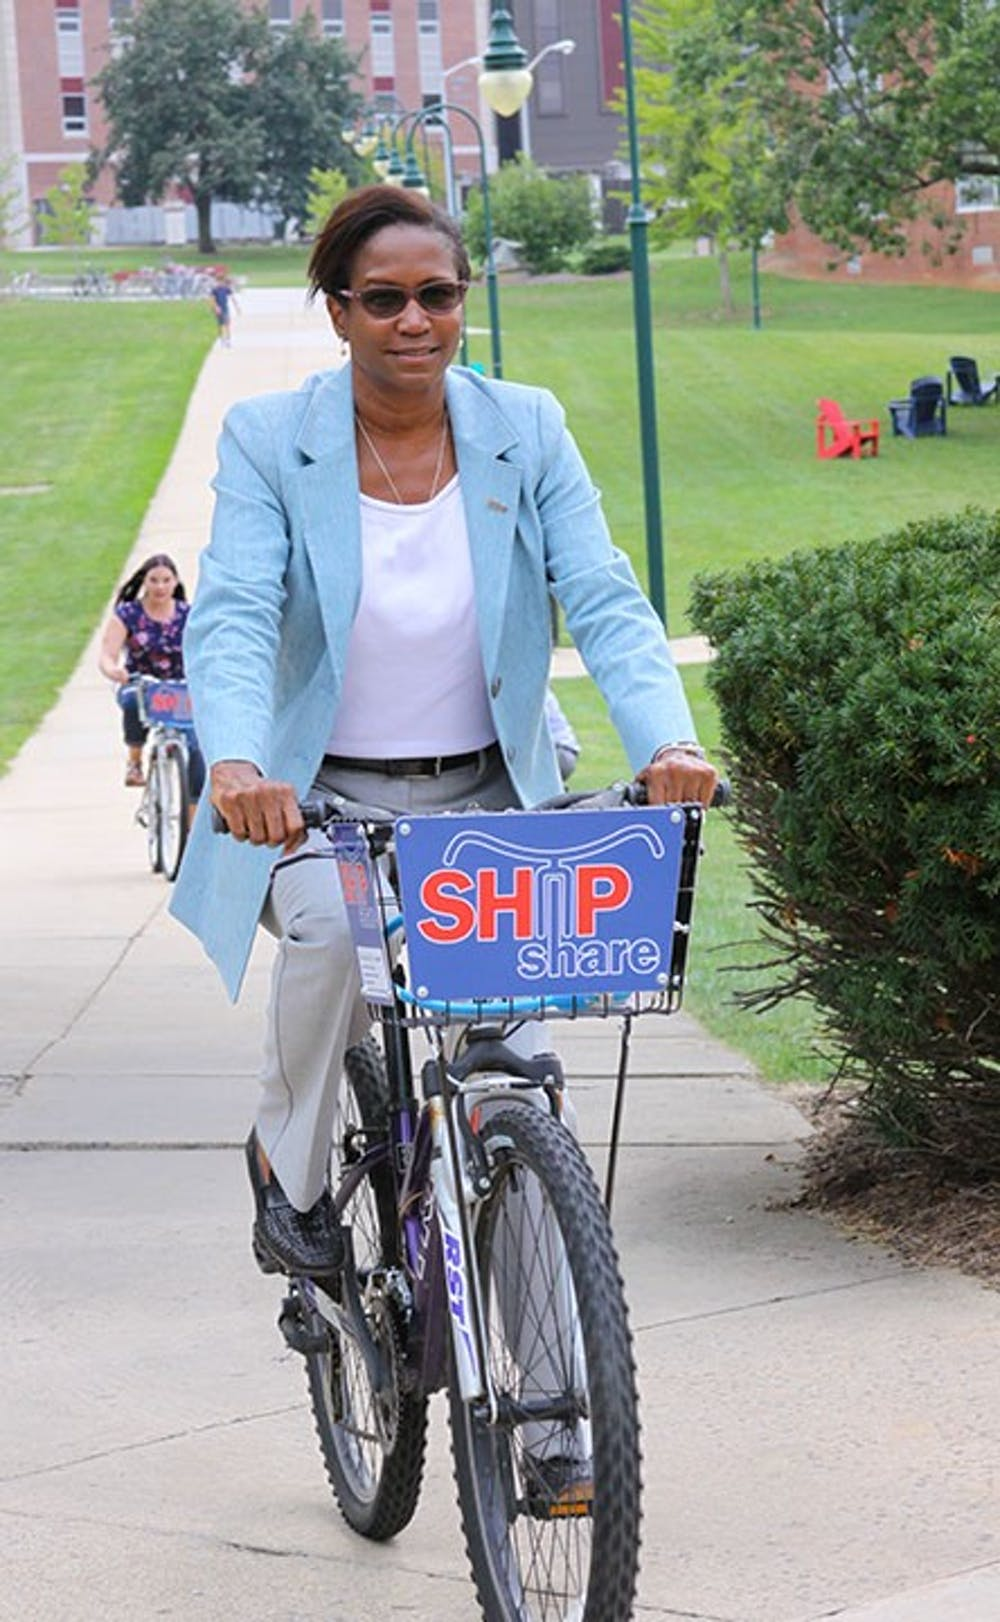 Bike sharing program introduced at SU